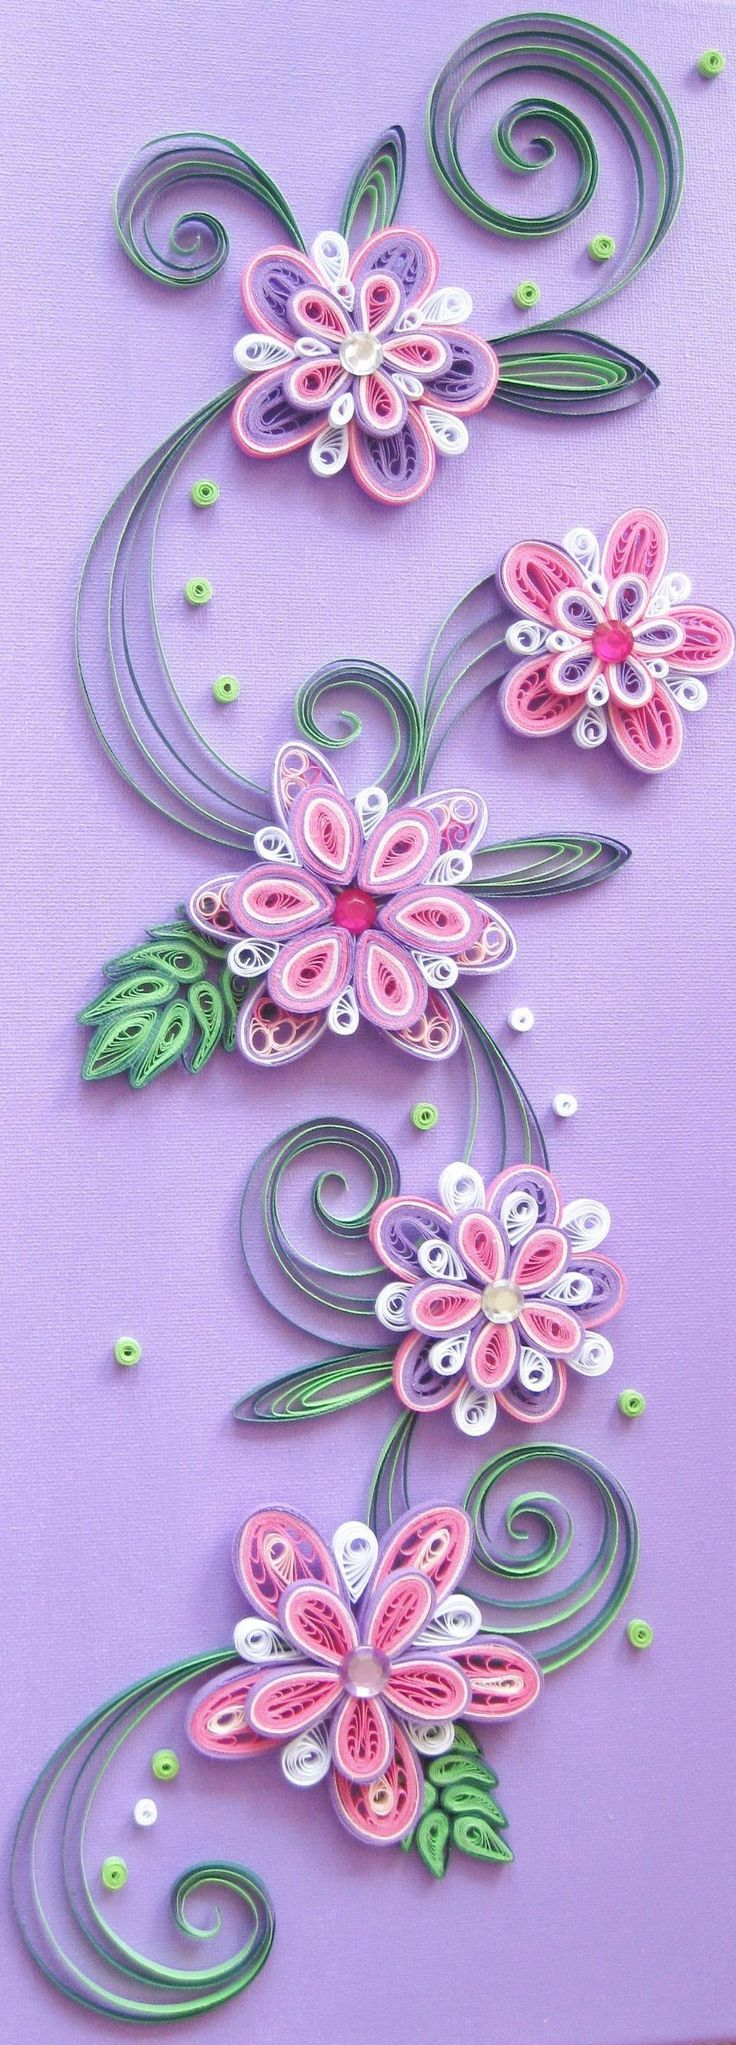 25 unique quilling designs ideas on pinterest quiling for Quilling craft ideas